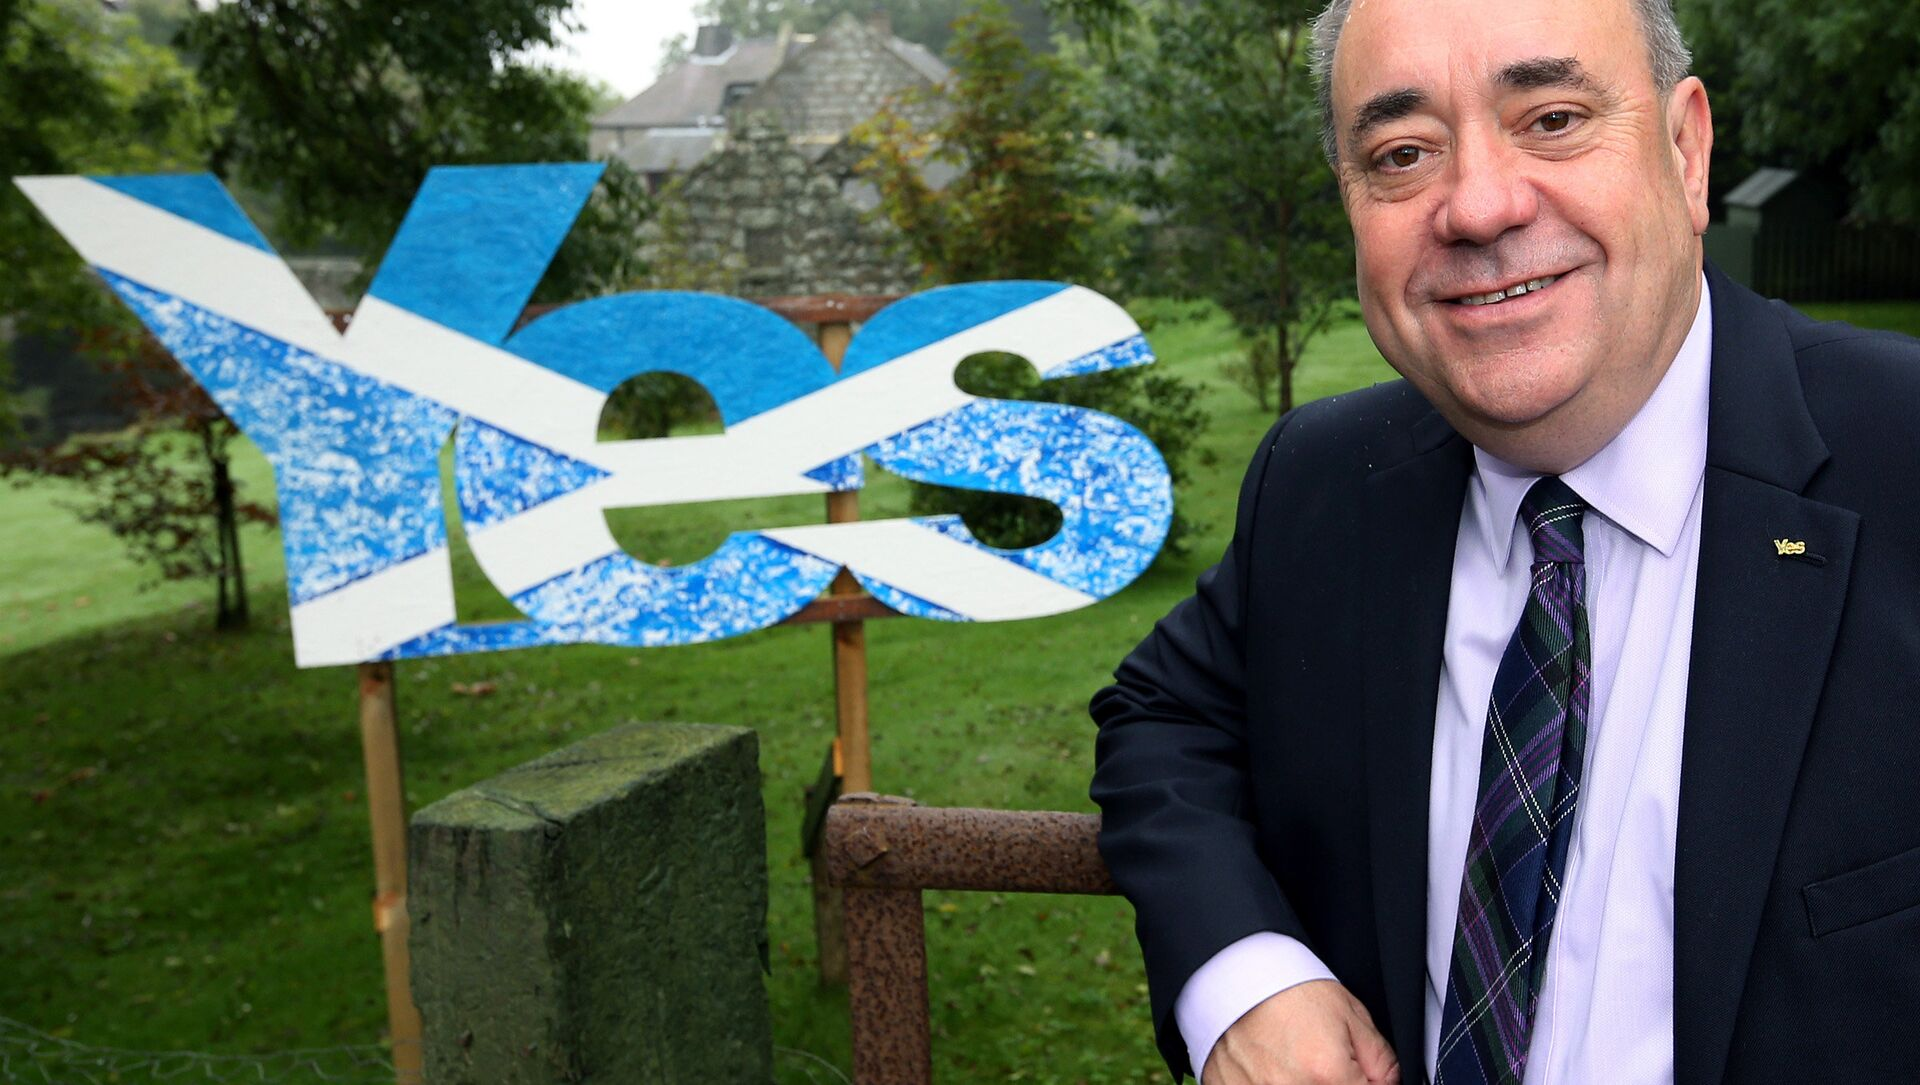 Scotland's then First Minister Alex Salmond poses for photographs outside his home in Strichen, Scotland, Thursday, Sept. 18, 2014.  - Sputnik International, 1920, 28.03.2021